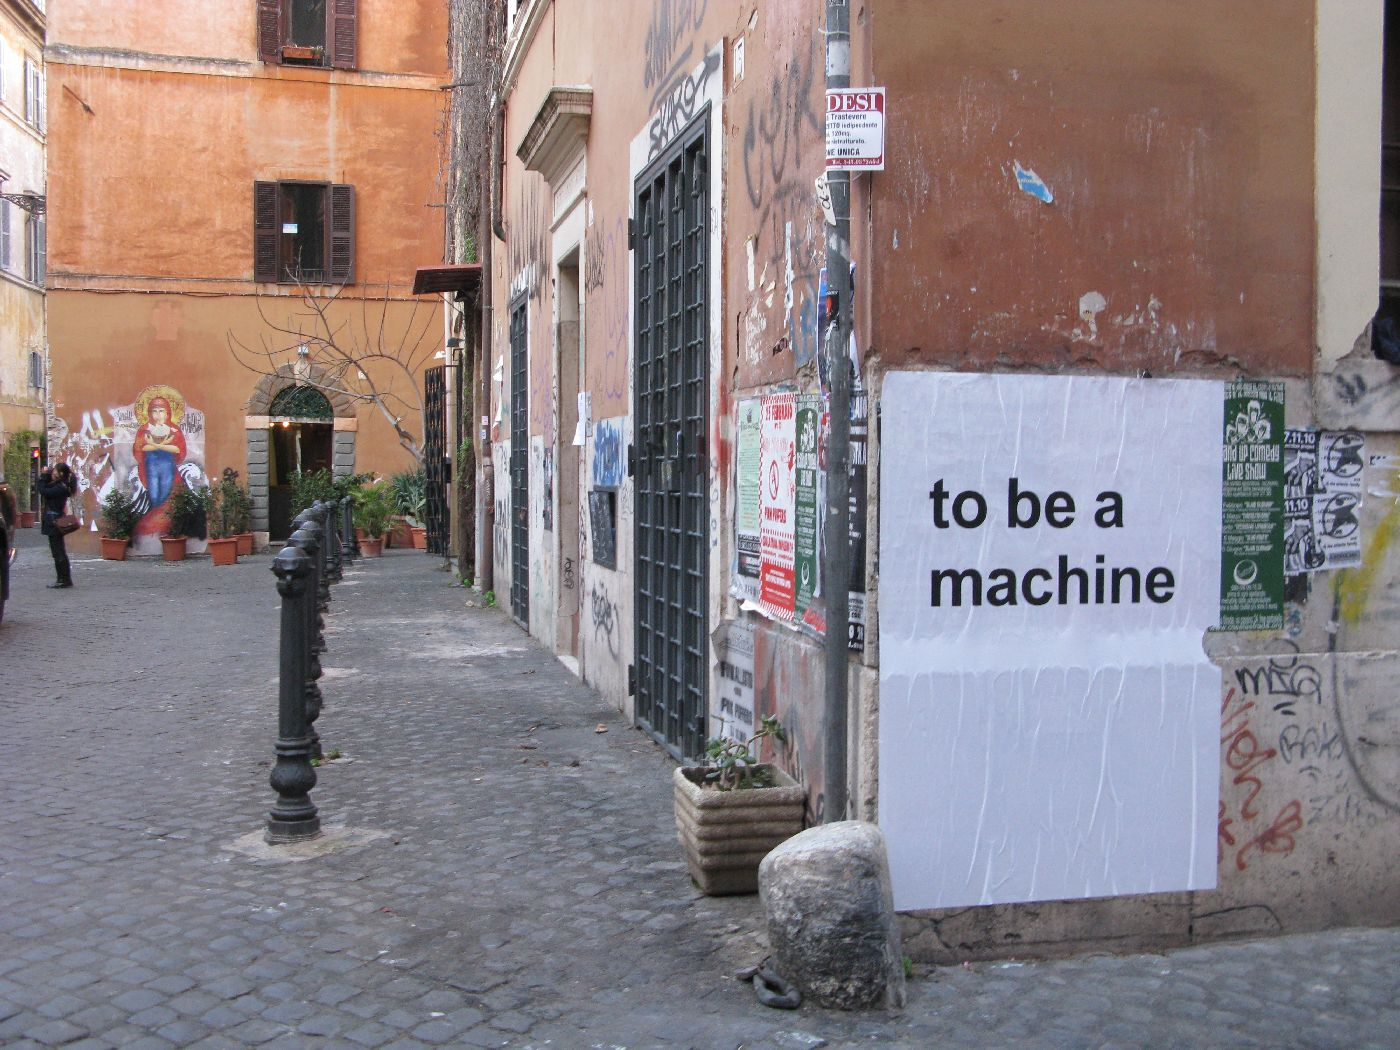 To be a machine [12220]